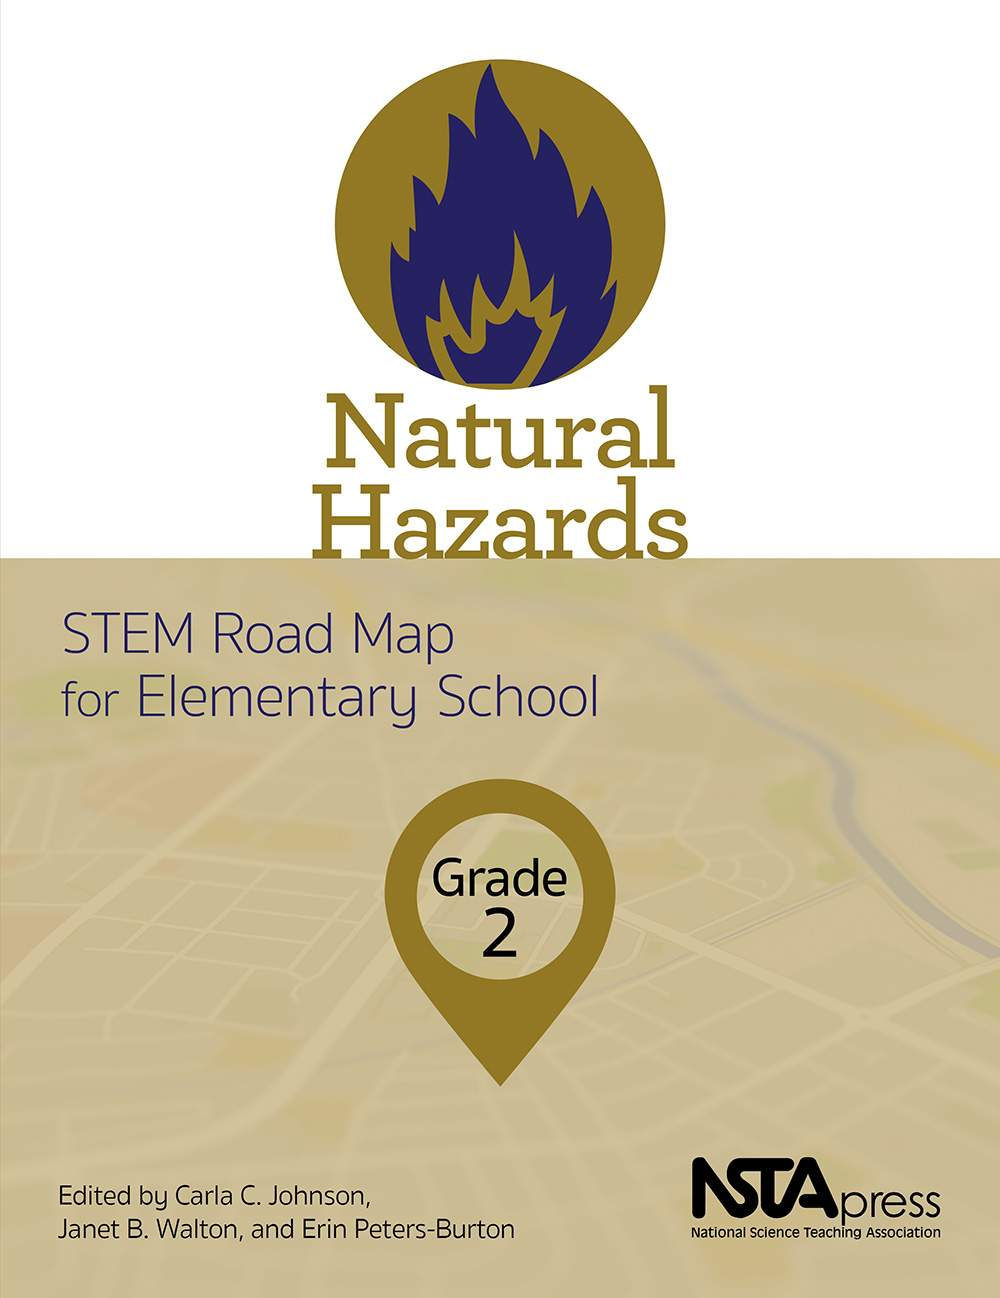 Natural Hazards STEM Road Map for Elementary School